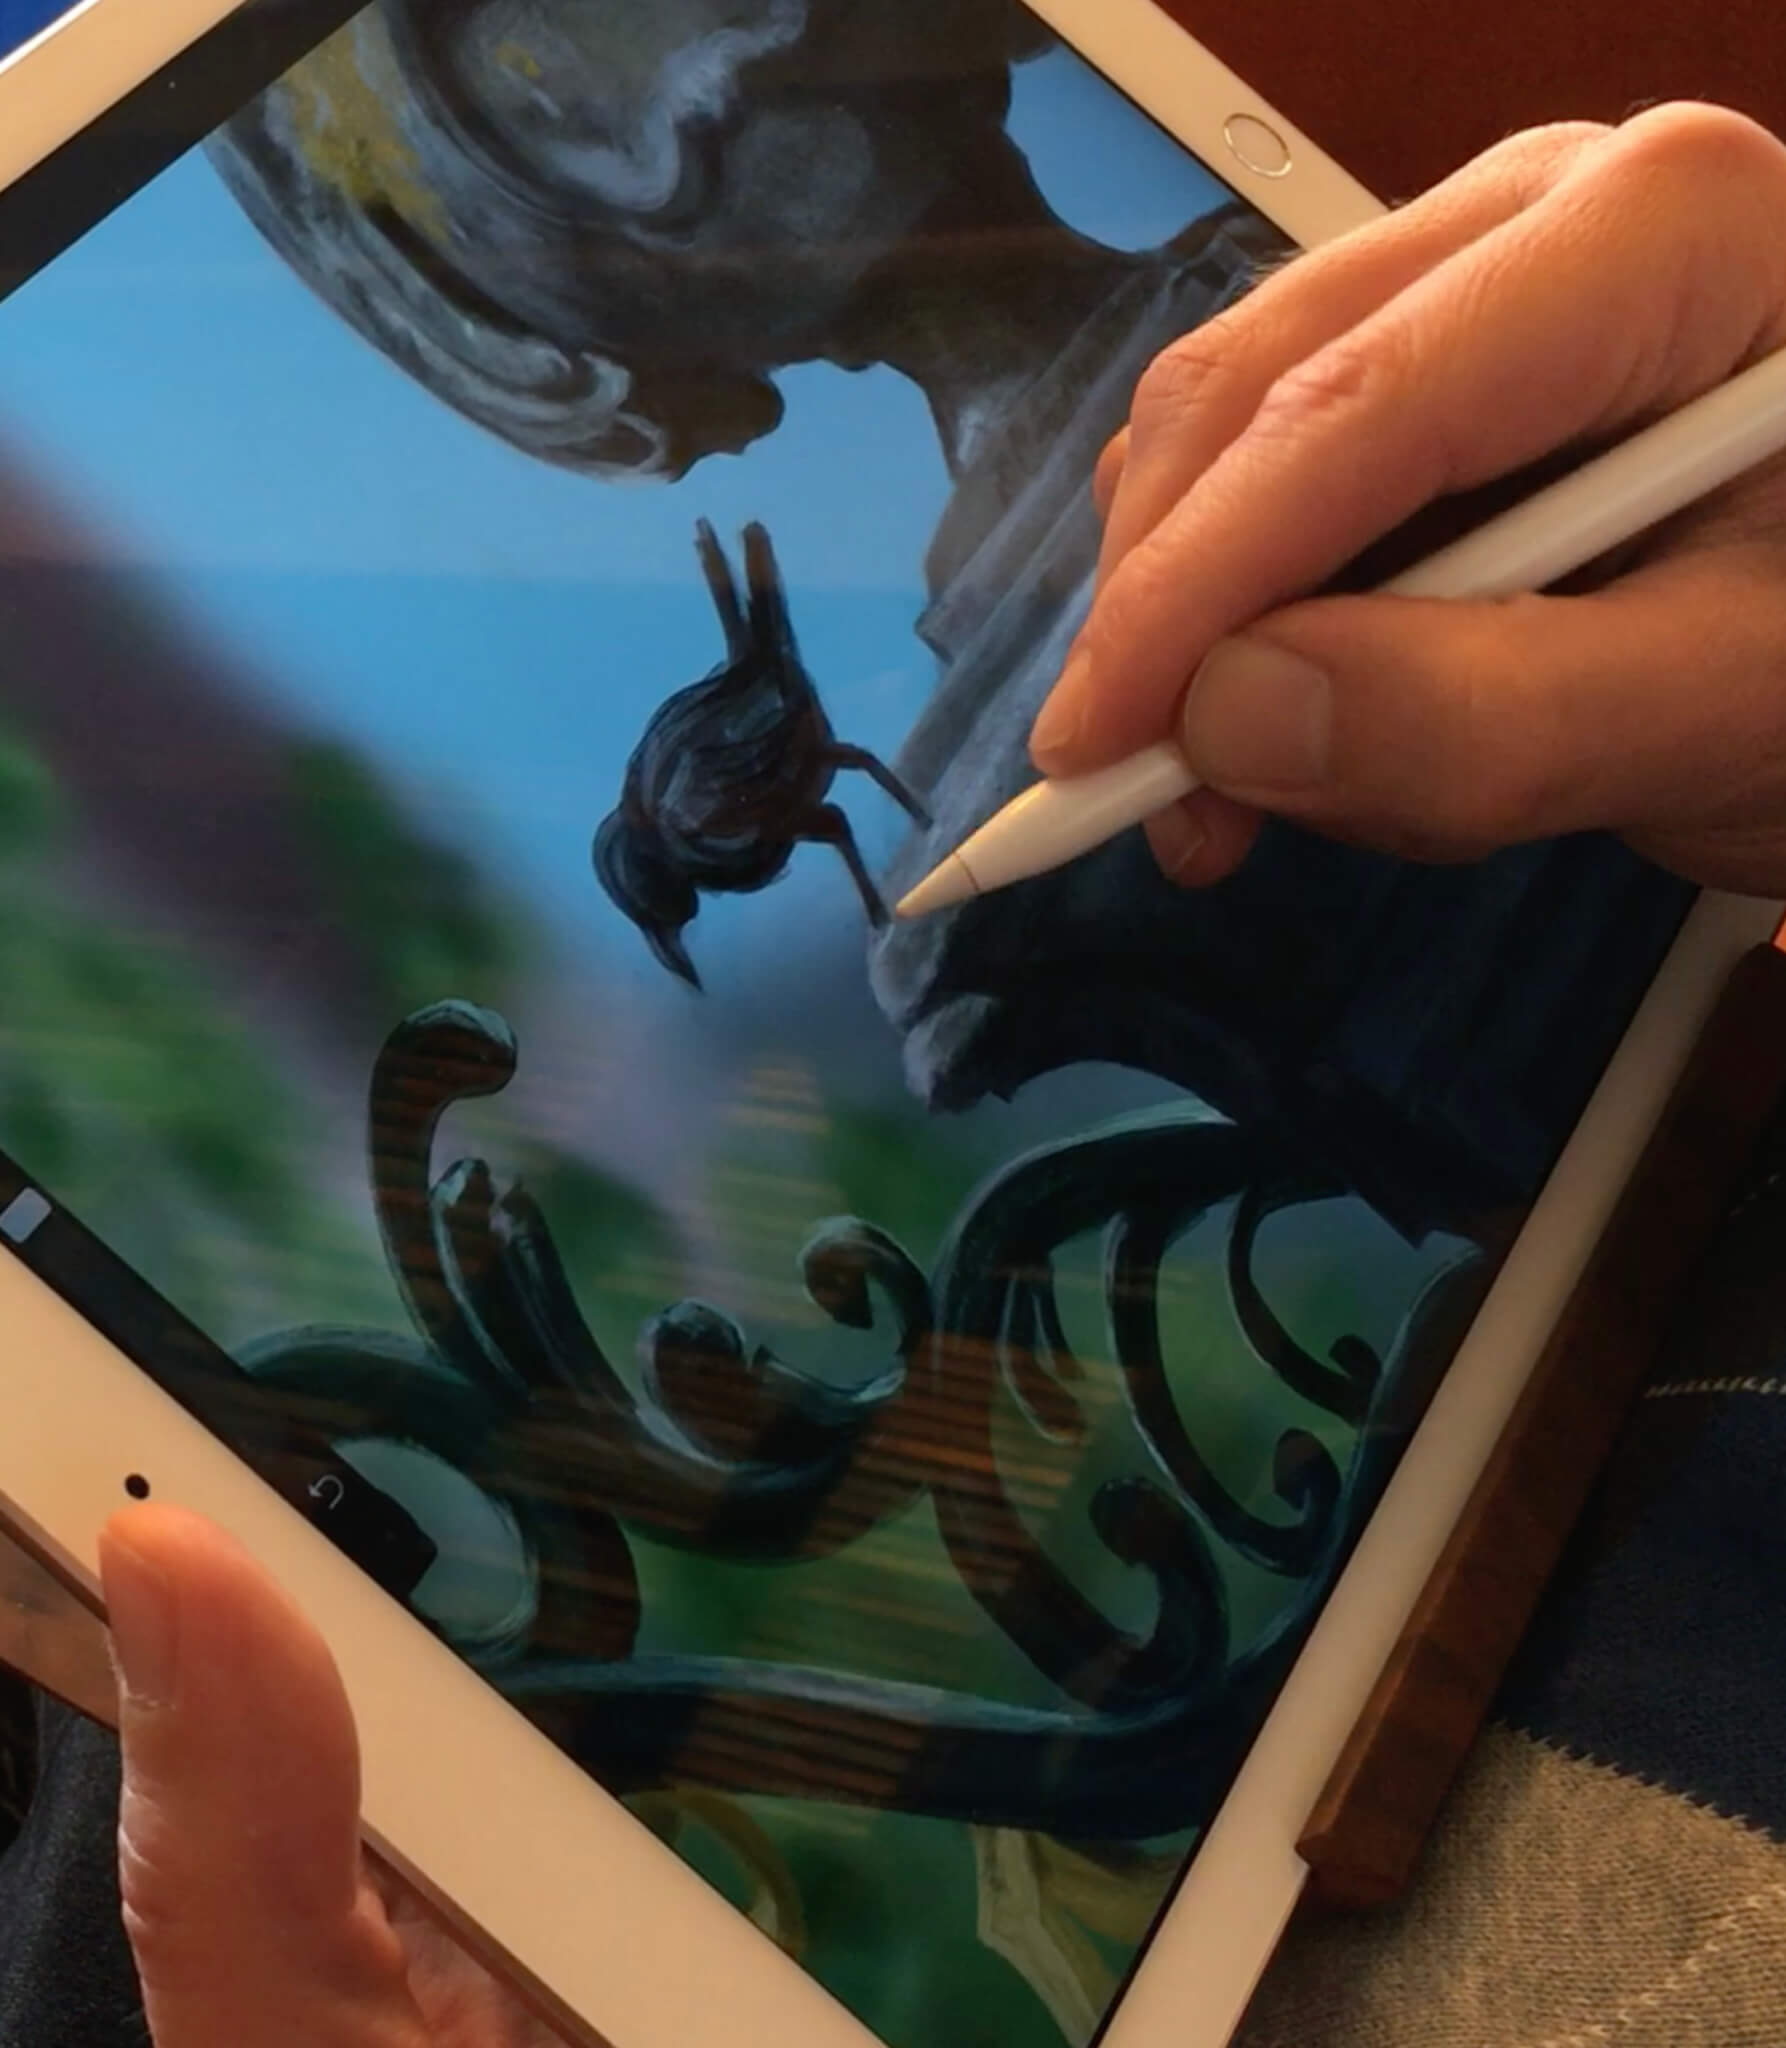 Stefan de Groot Hand Apple Pencil iPad Pro